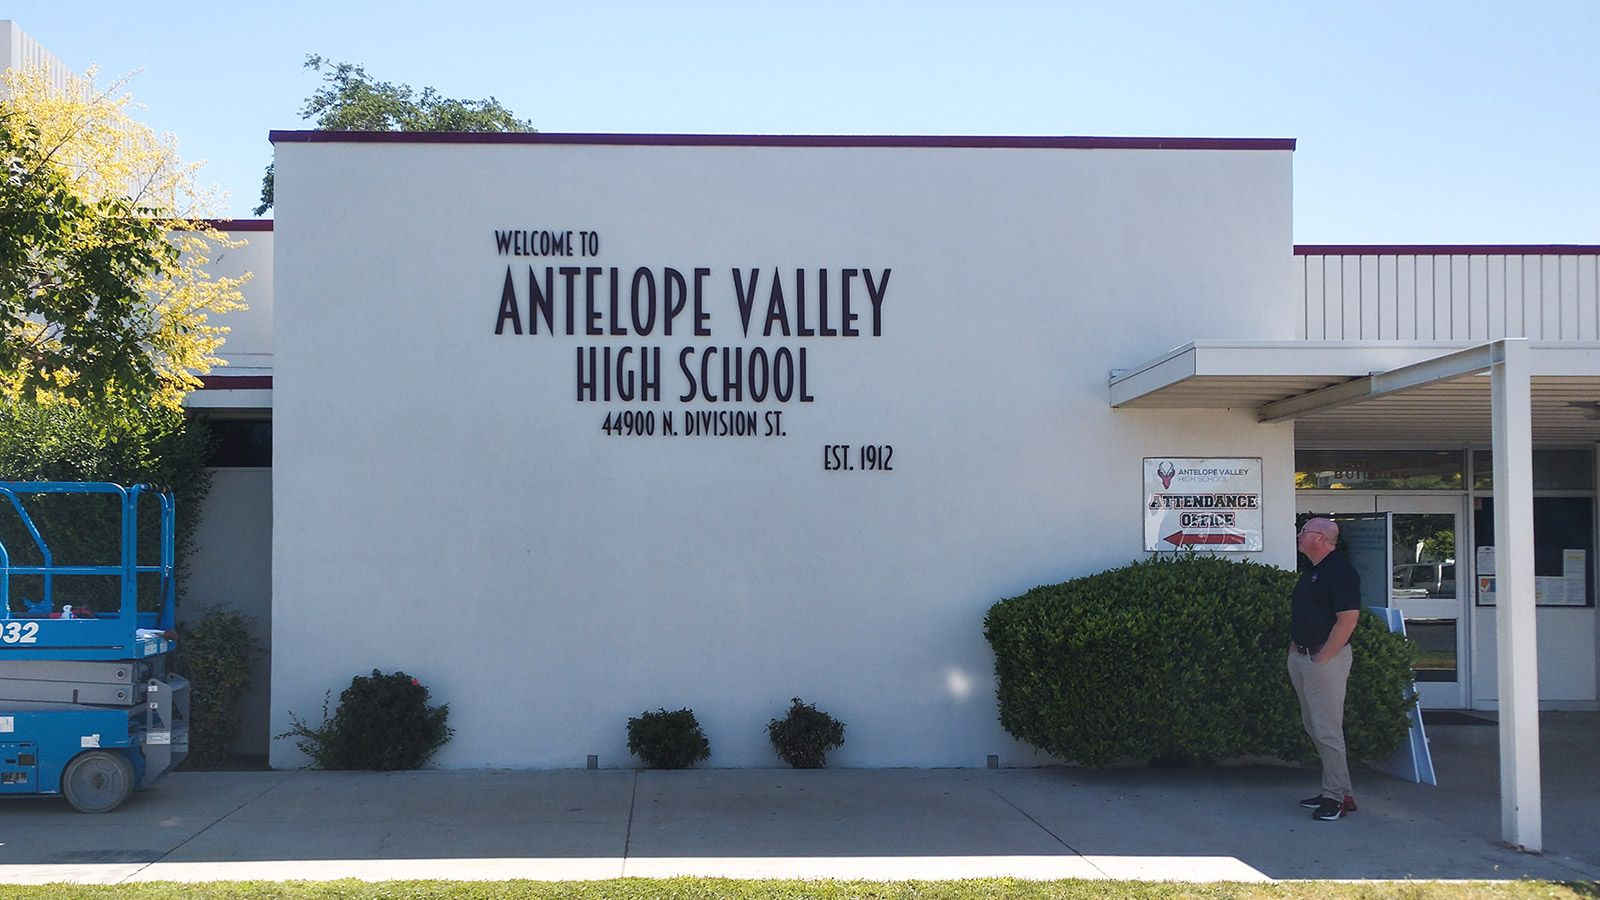 Antelope valley building 3d letters